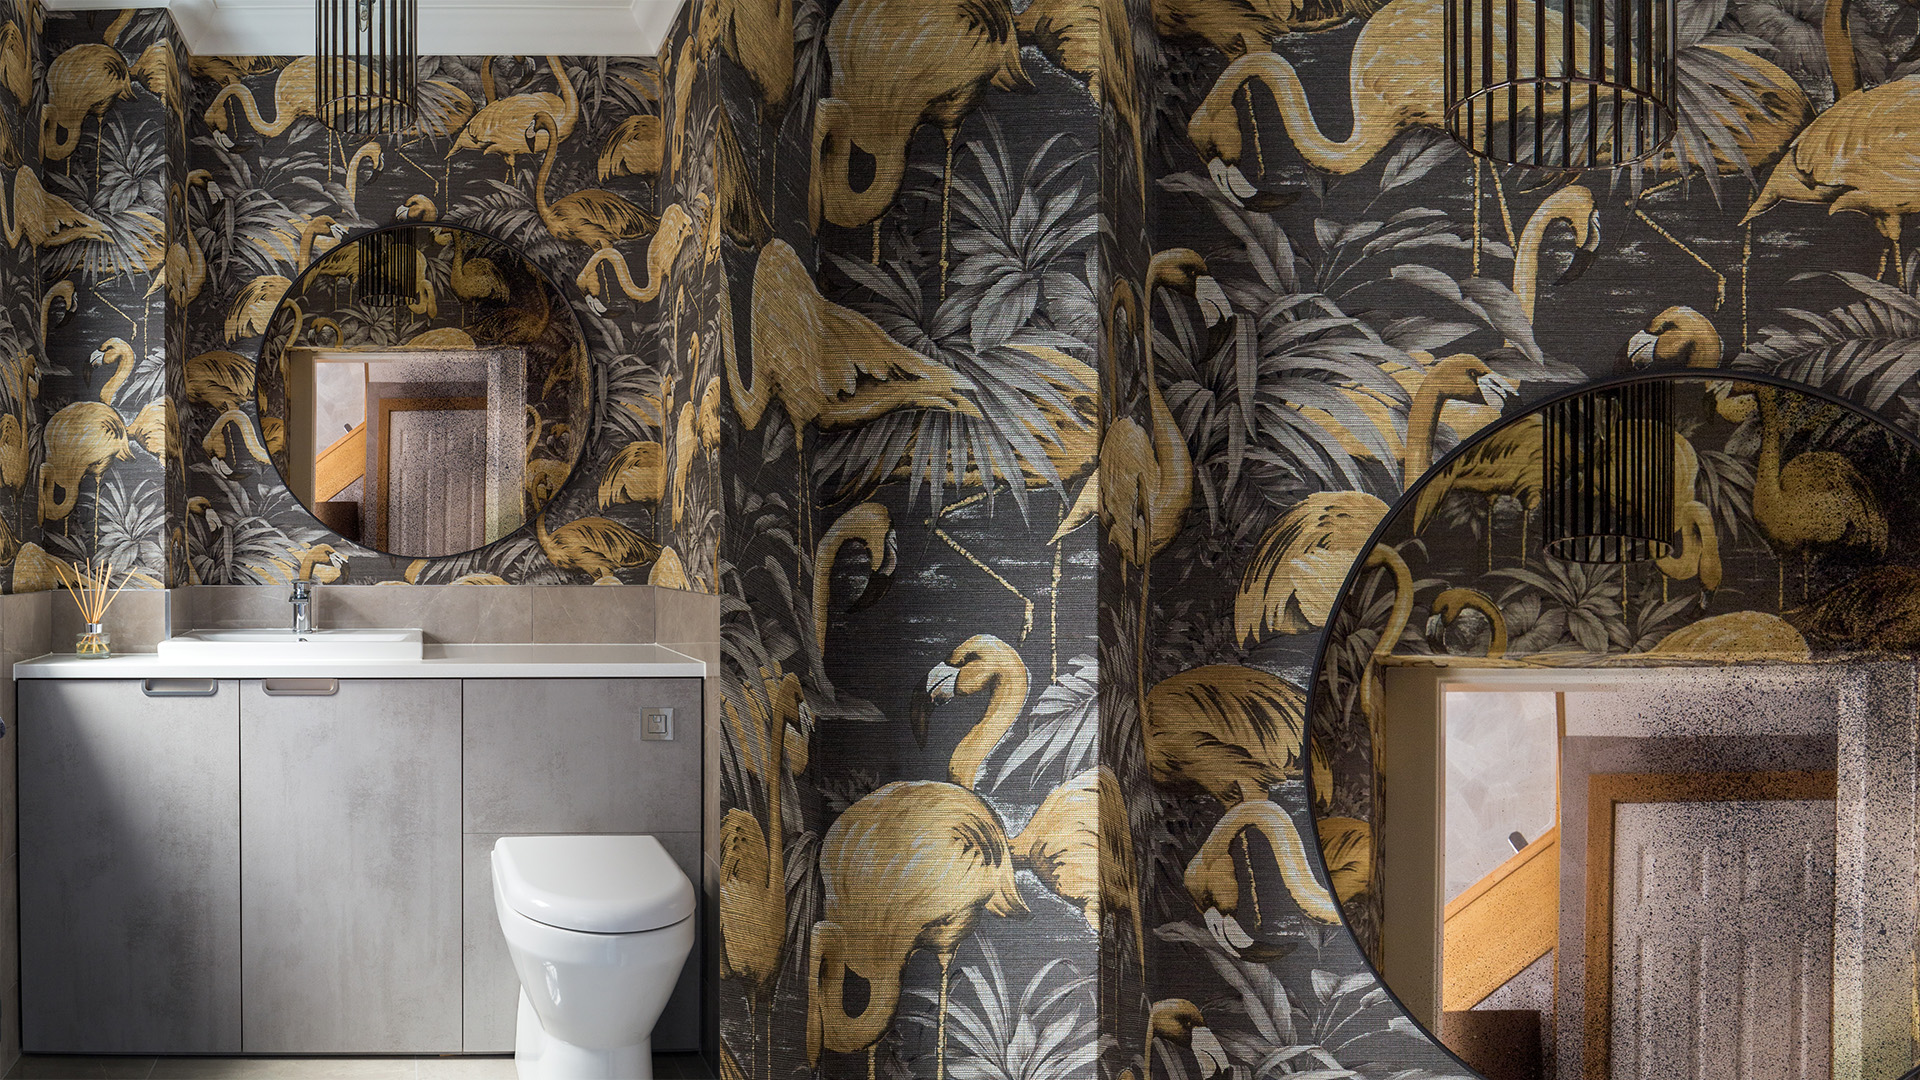 Flamingo wallpaper, downstairs bathroom, aged mirror q